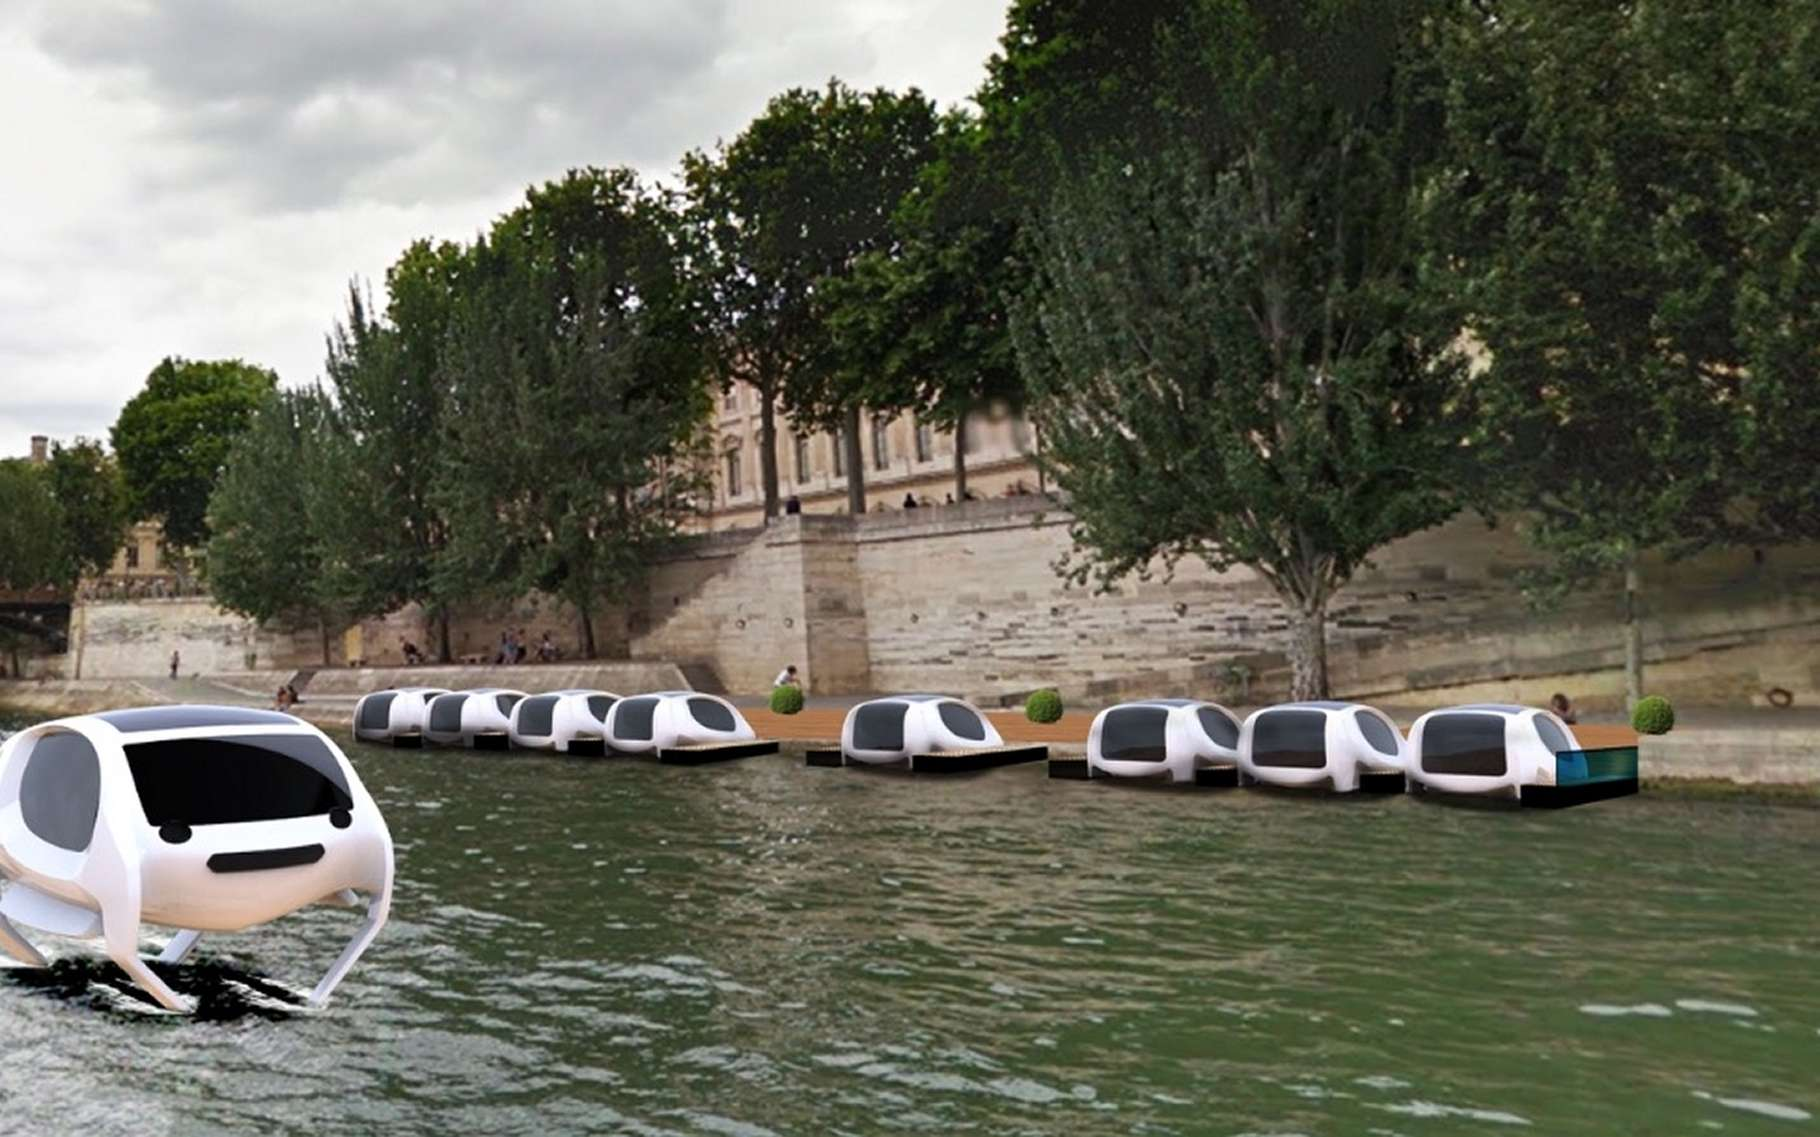 News: Paris Will Test 'Flying' Water Taxis on the Seine Next Year